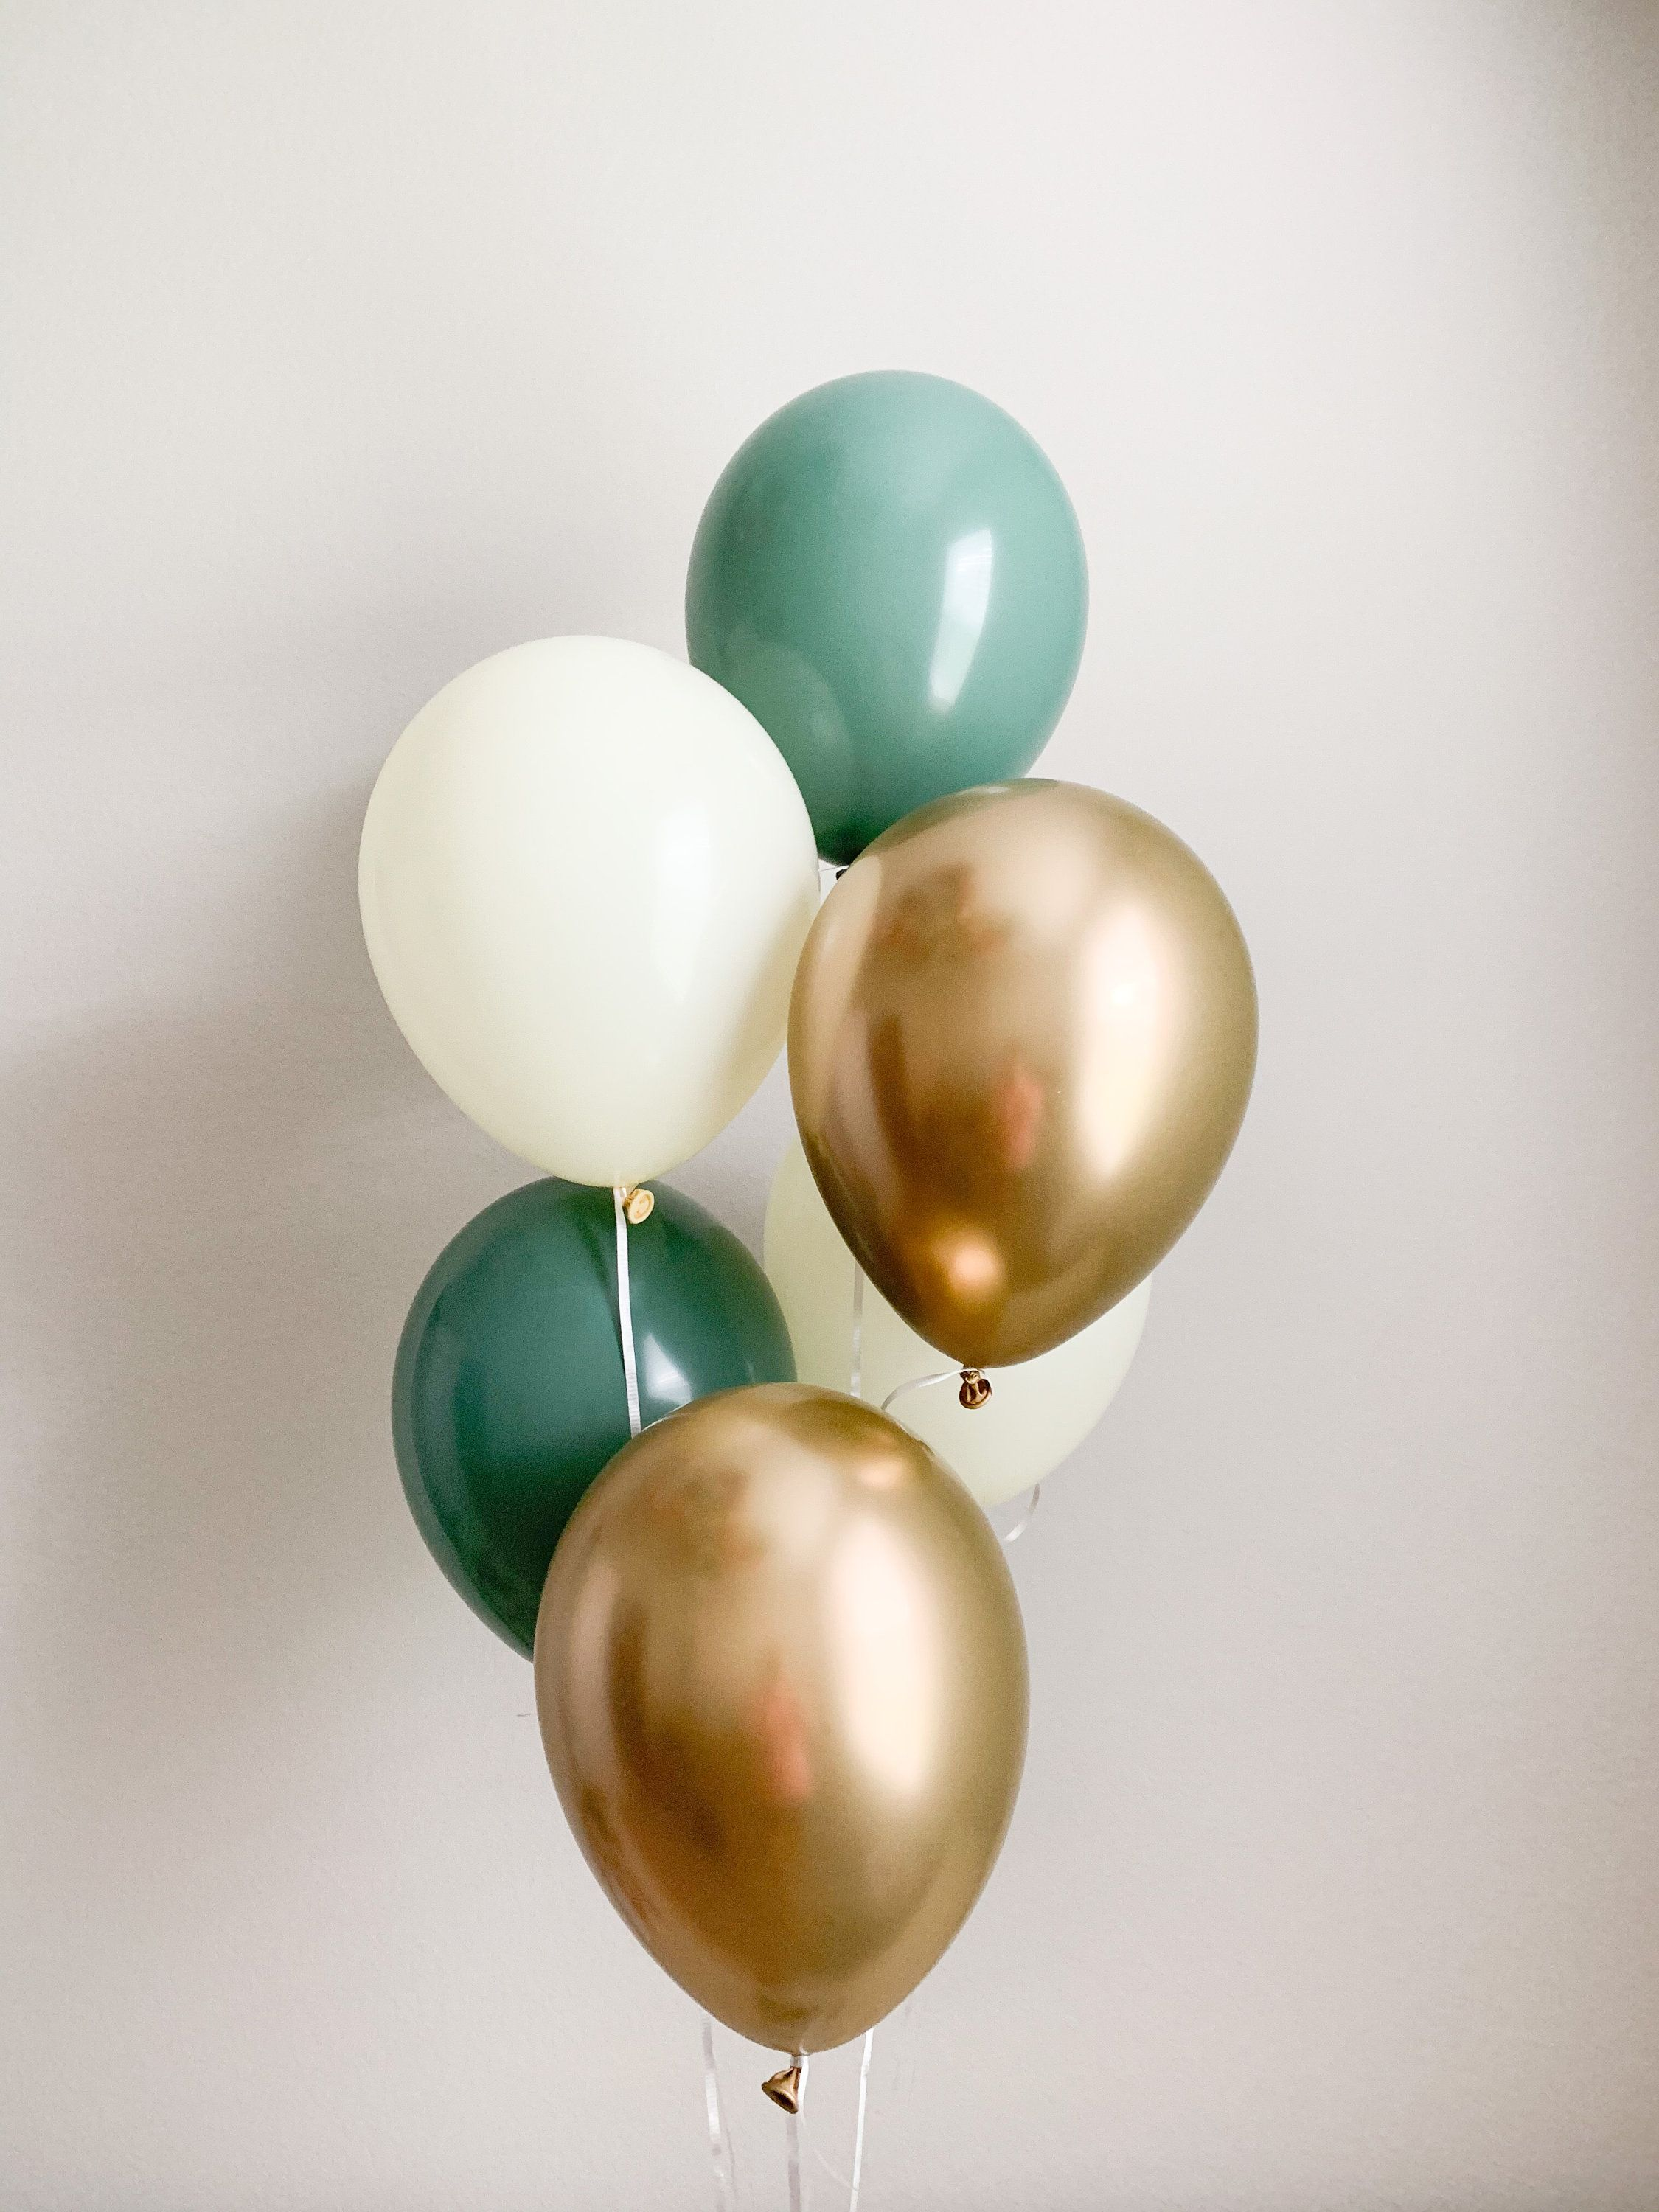 Chrome Gold and Confetti Balloons Bridal Shower Decor Baby Shower Balloons Sage Wedding Sage Decorations Sage Green Balloons